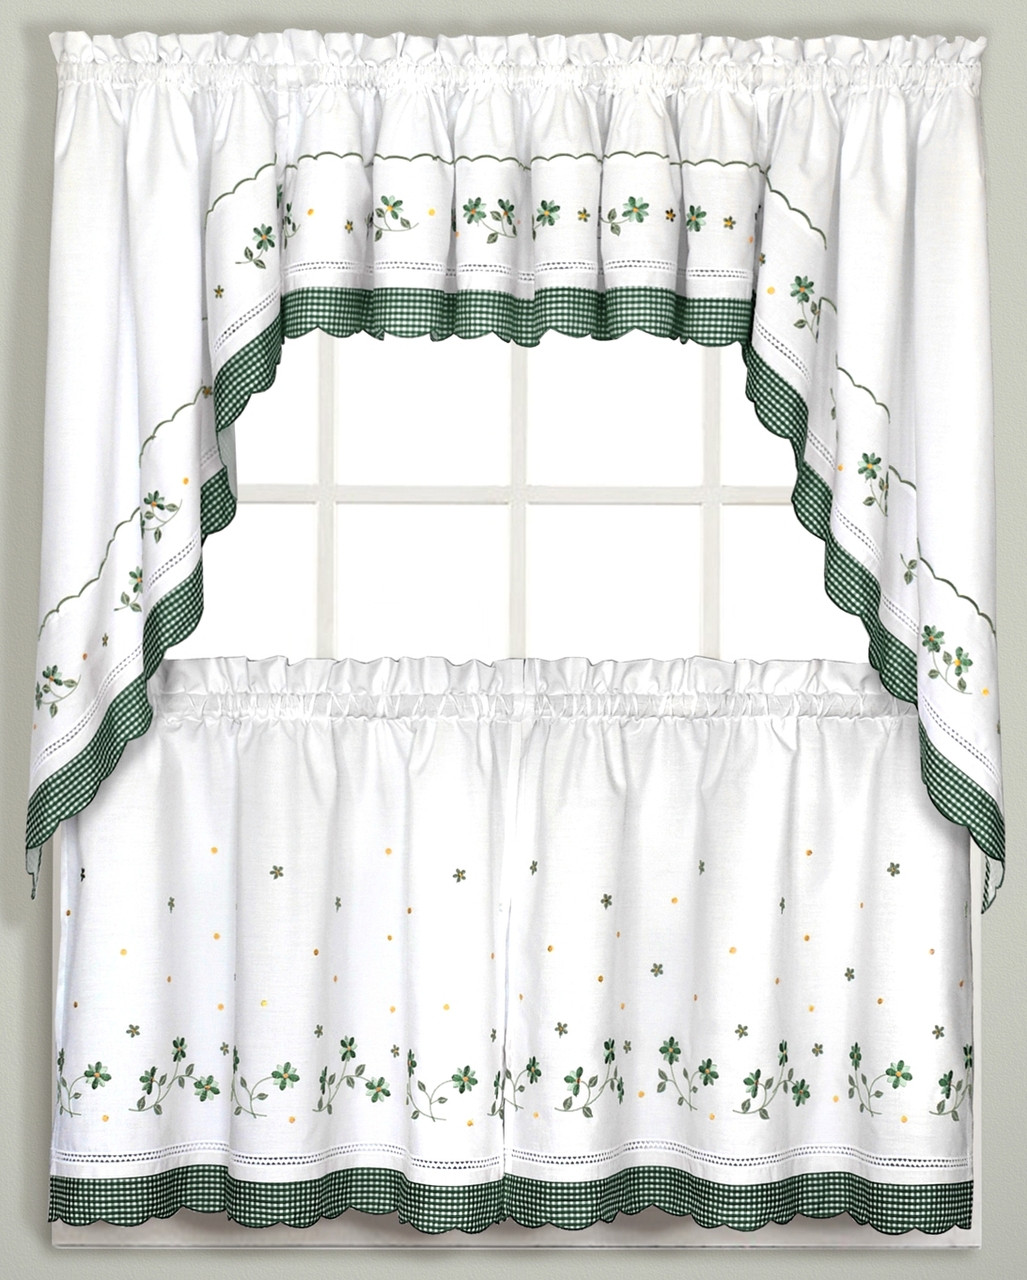 Gingham Floral Kitchen Curtain